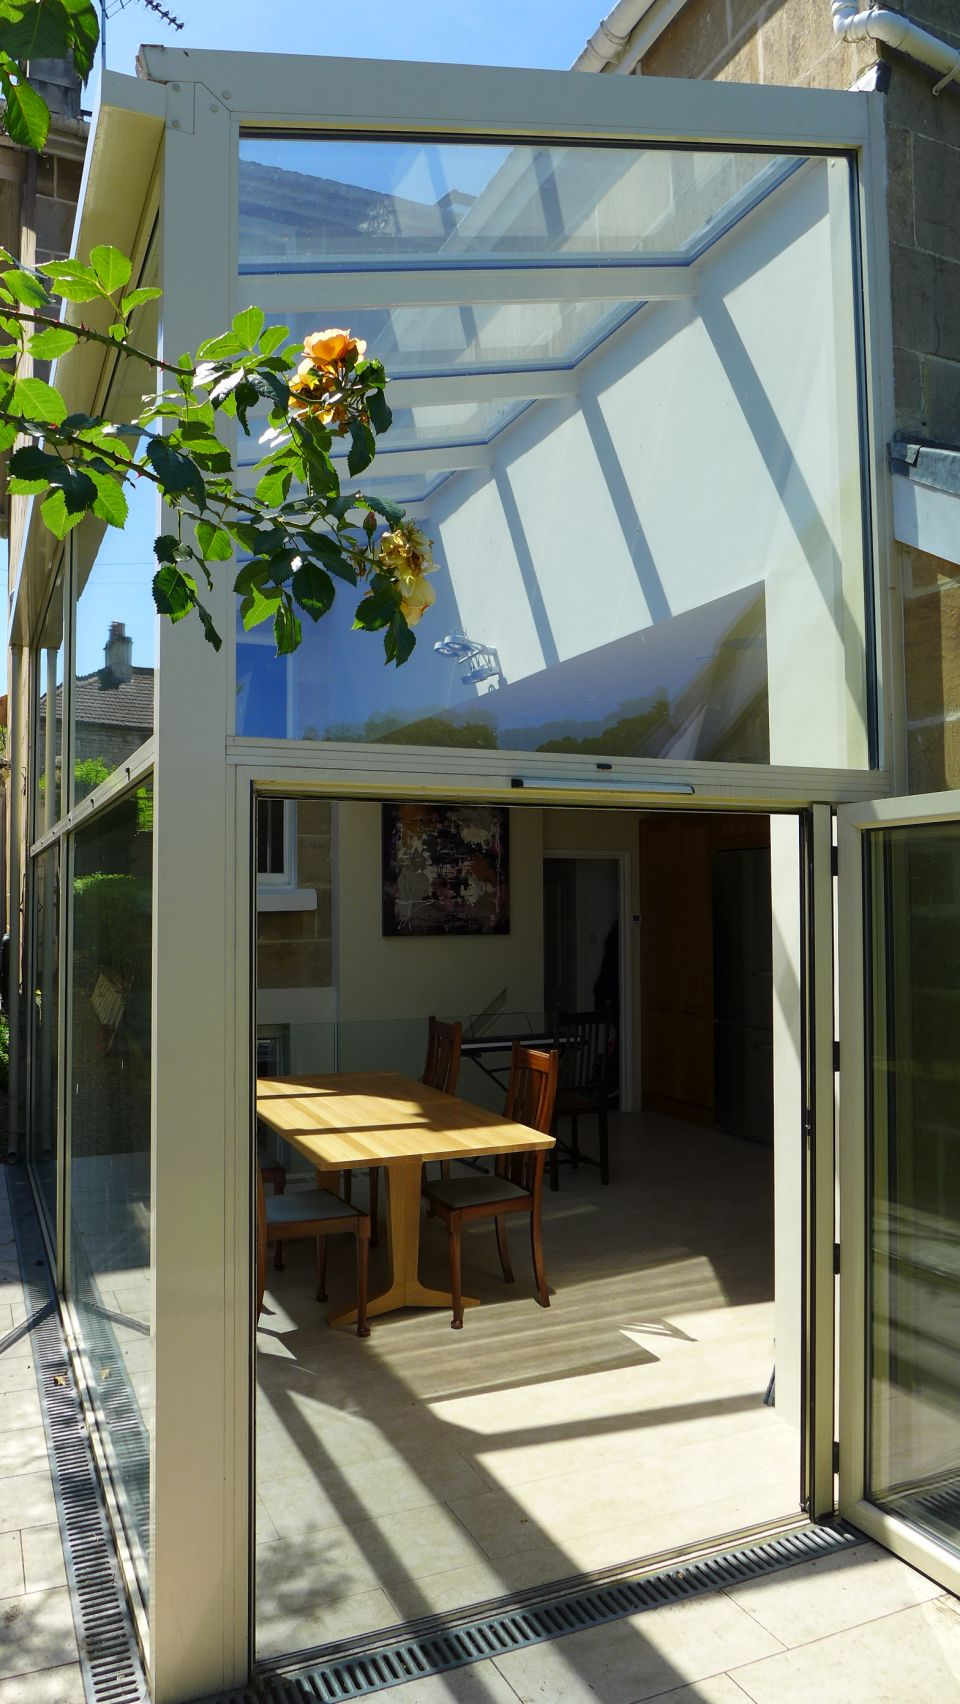 interior design in Bath - a glass side conservatory to an Edwardian end of terrace house